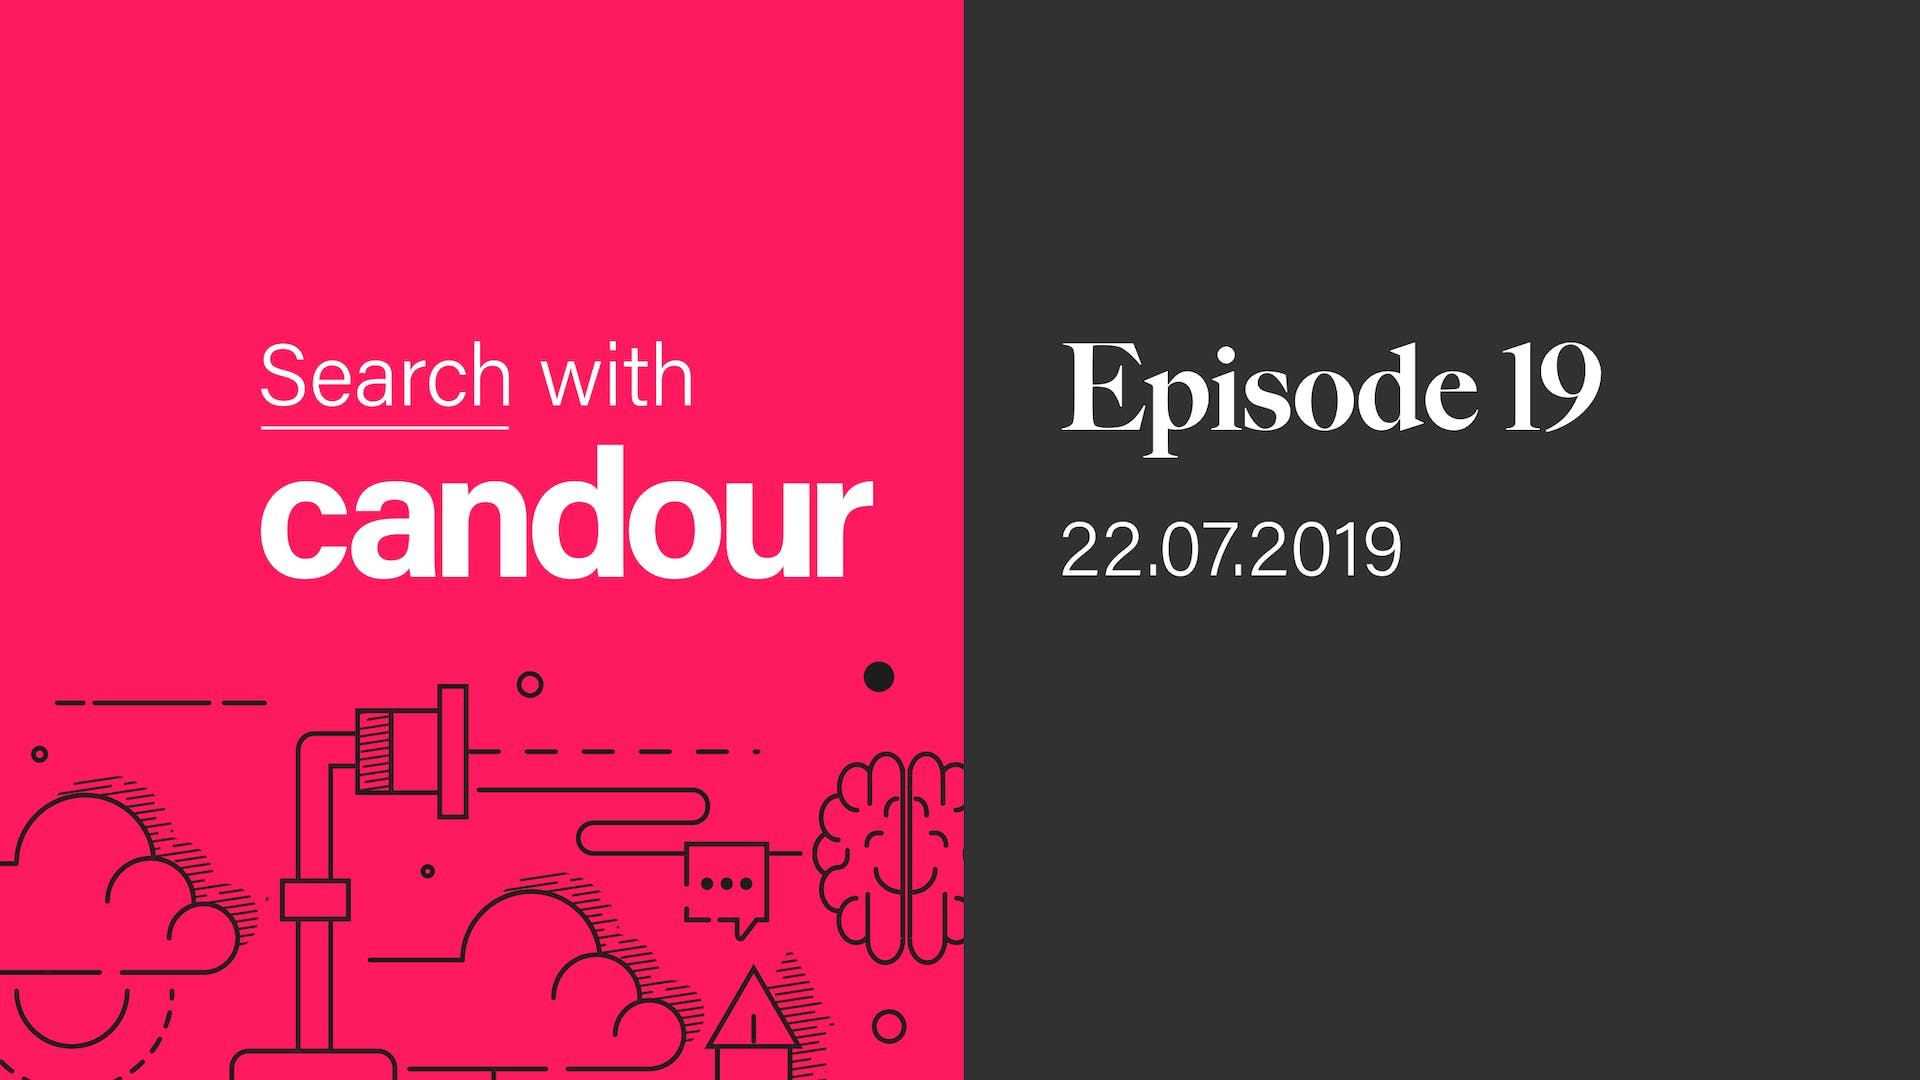 Search with Candour - Episode 19